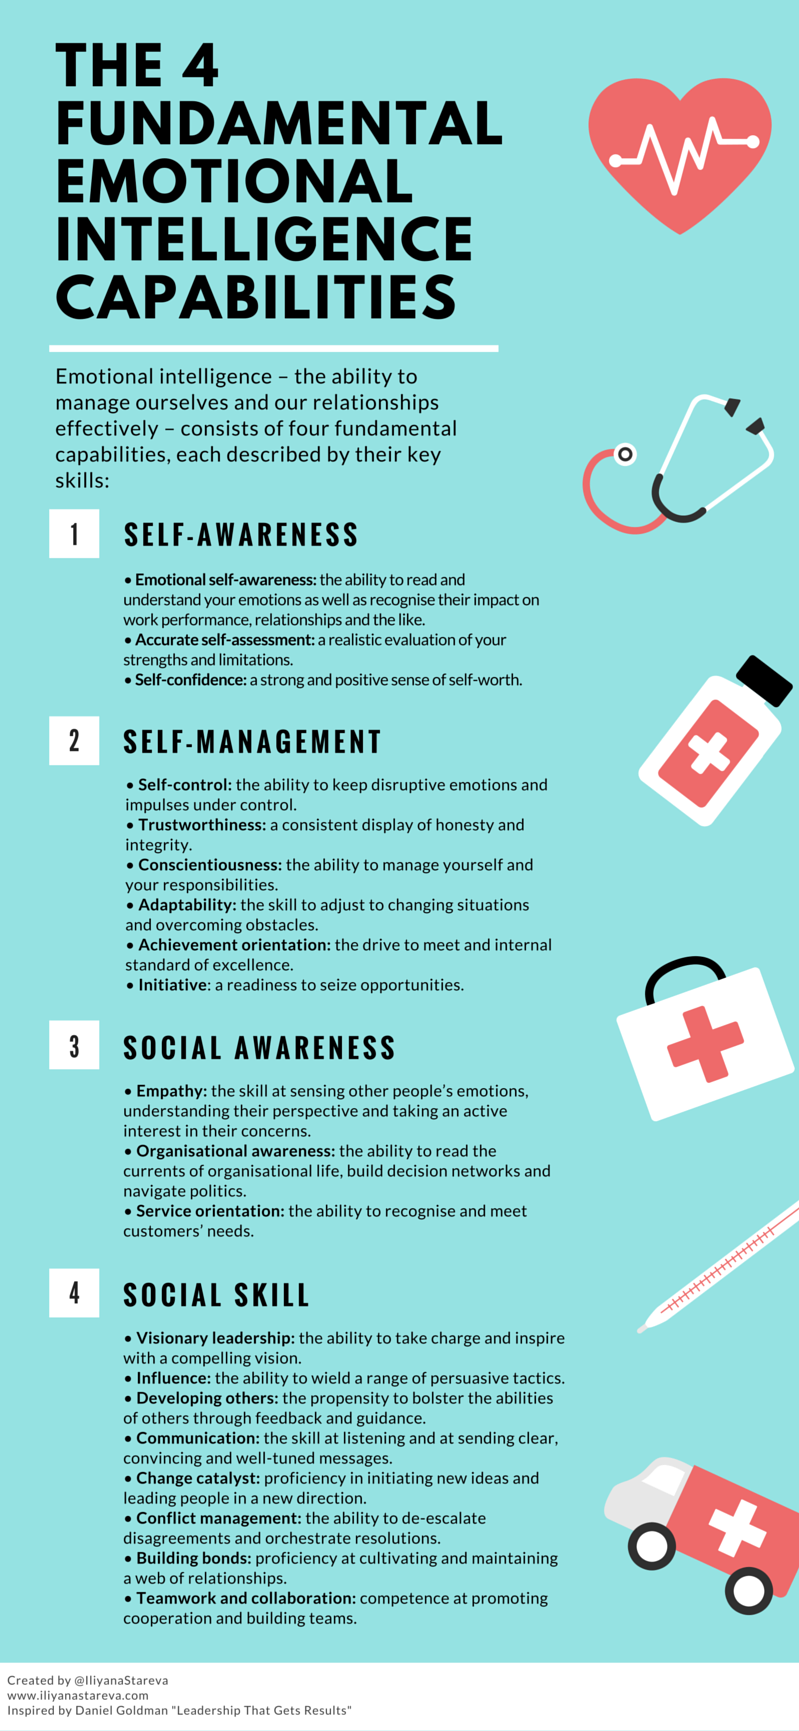 the_4_fundamental_emotional_intelligence_capabilities_infographic.png